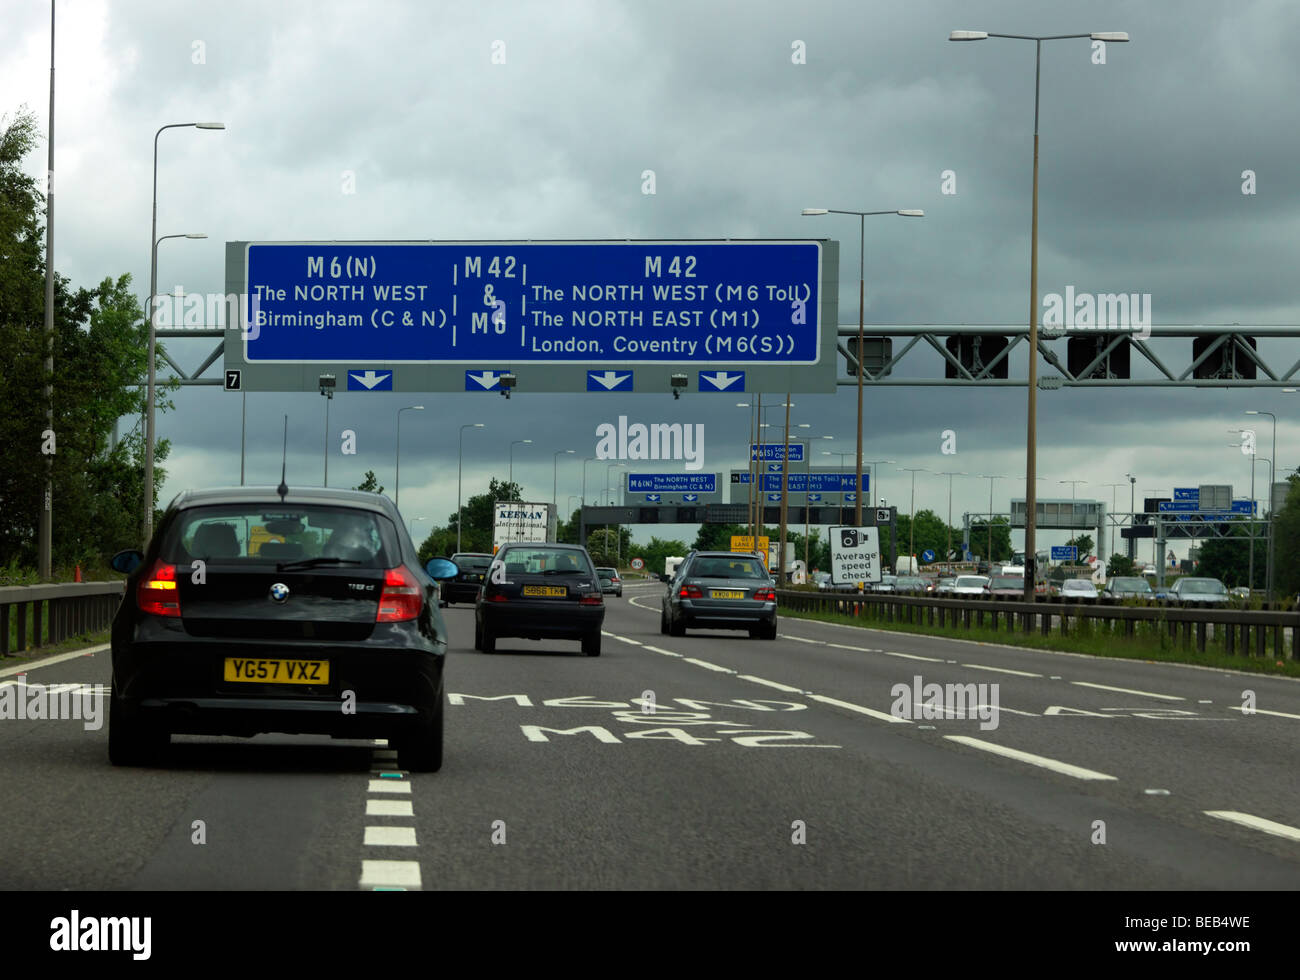 M 42 and M6 Motorways Merging and Average Speed Check - Stock Image